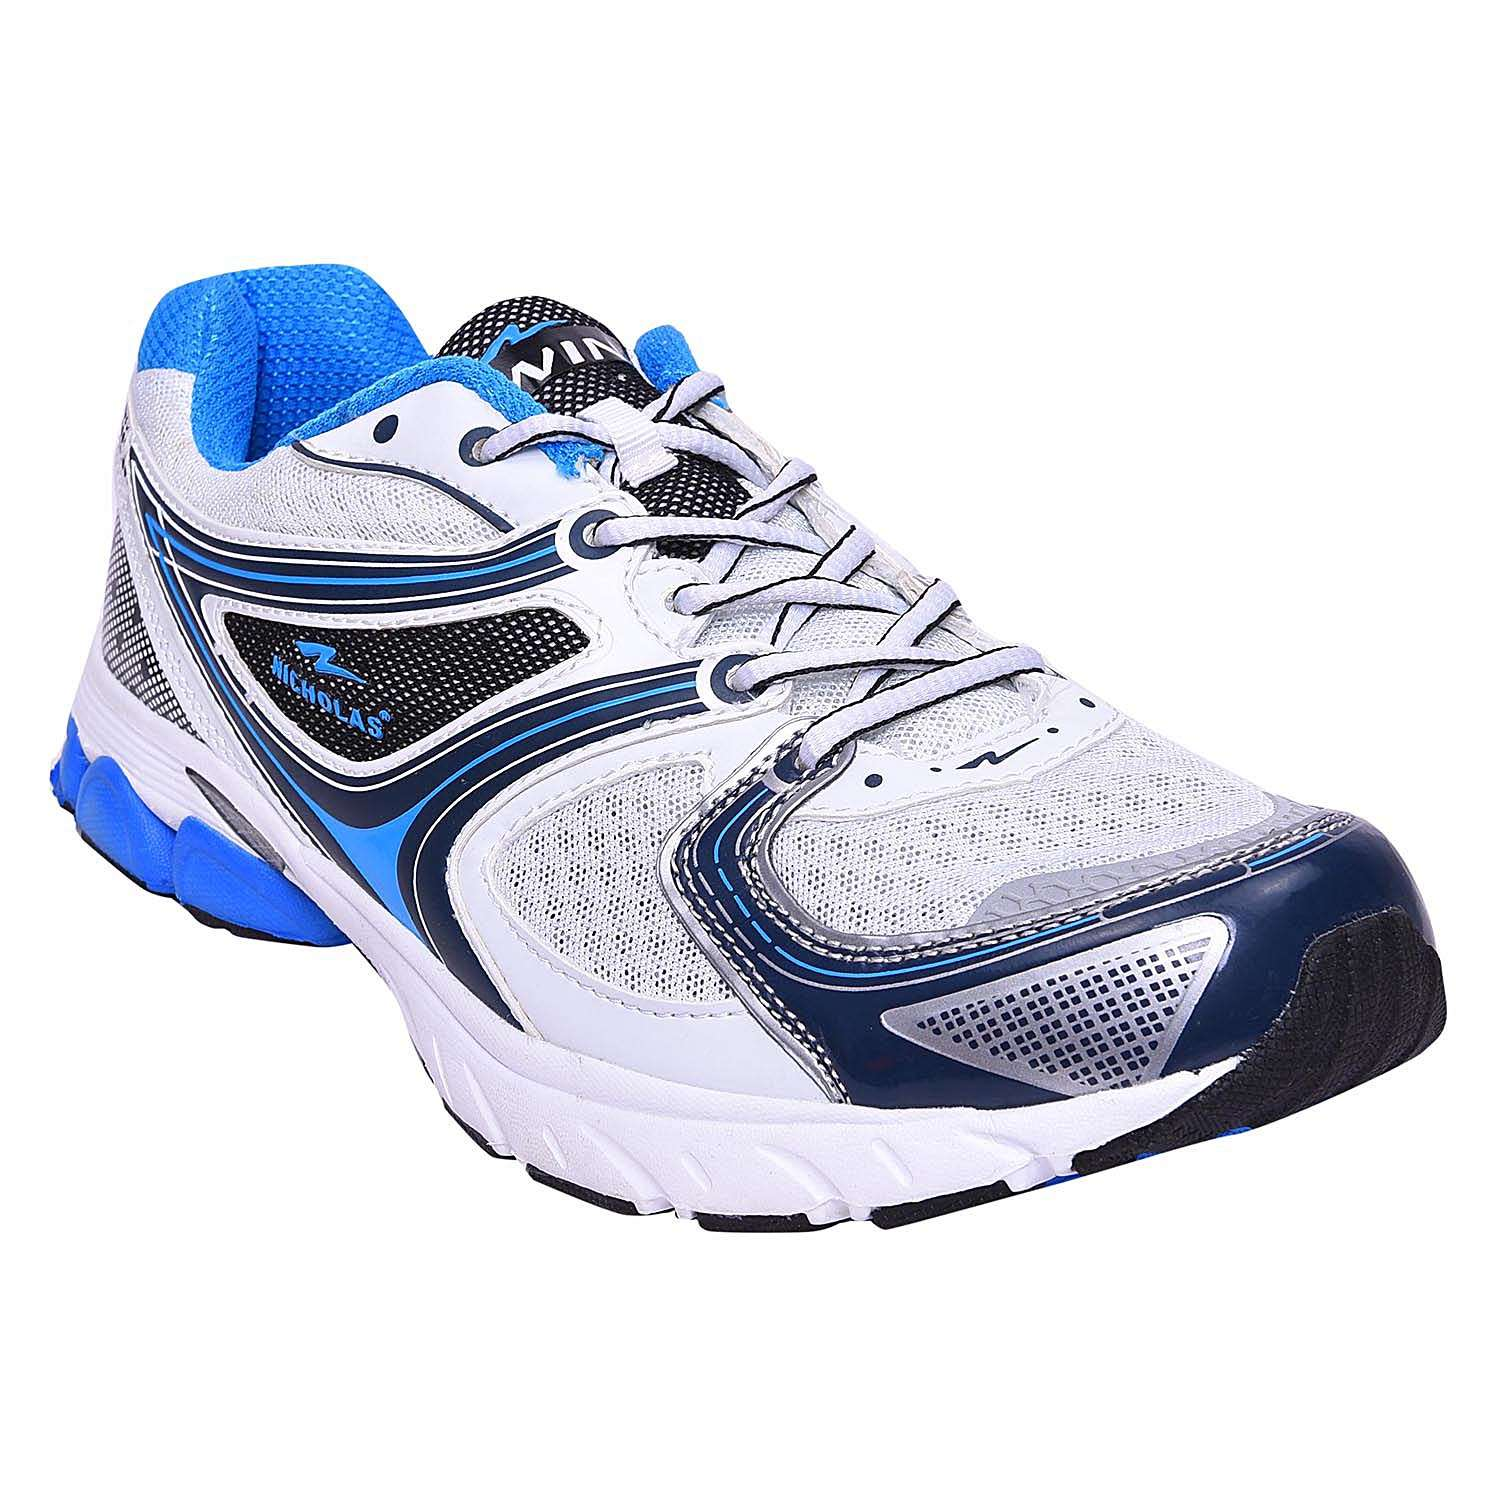 Mens Sports shoe TPH-919_White and Blue colour